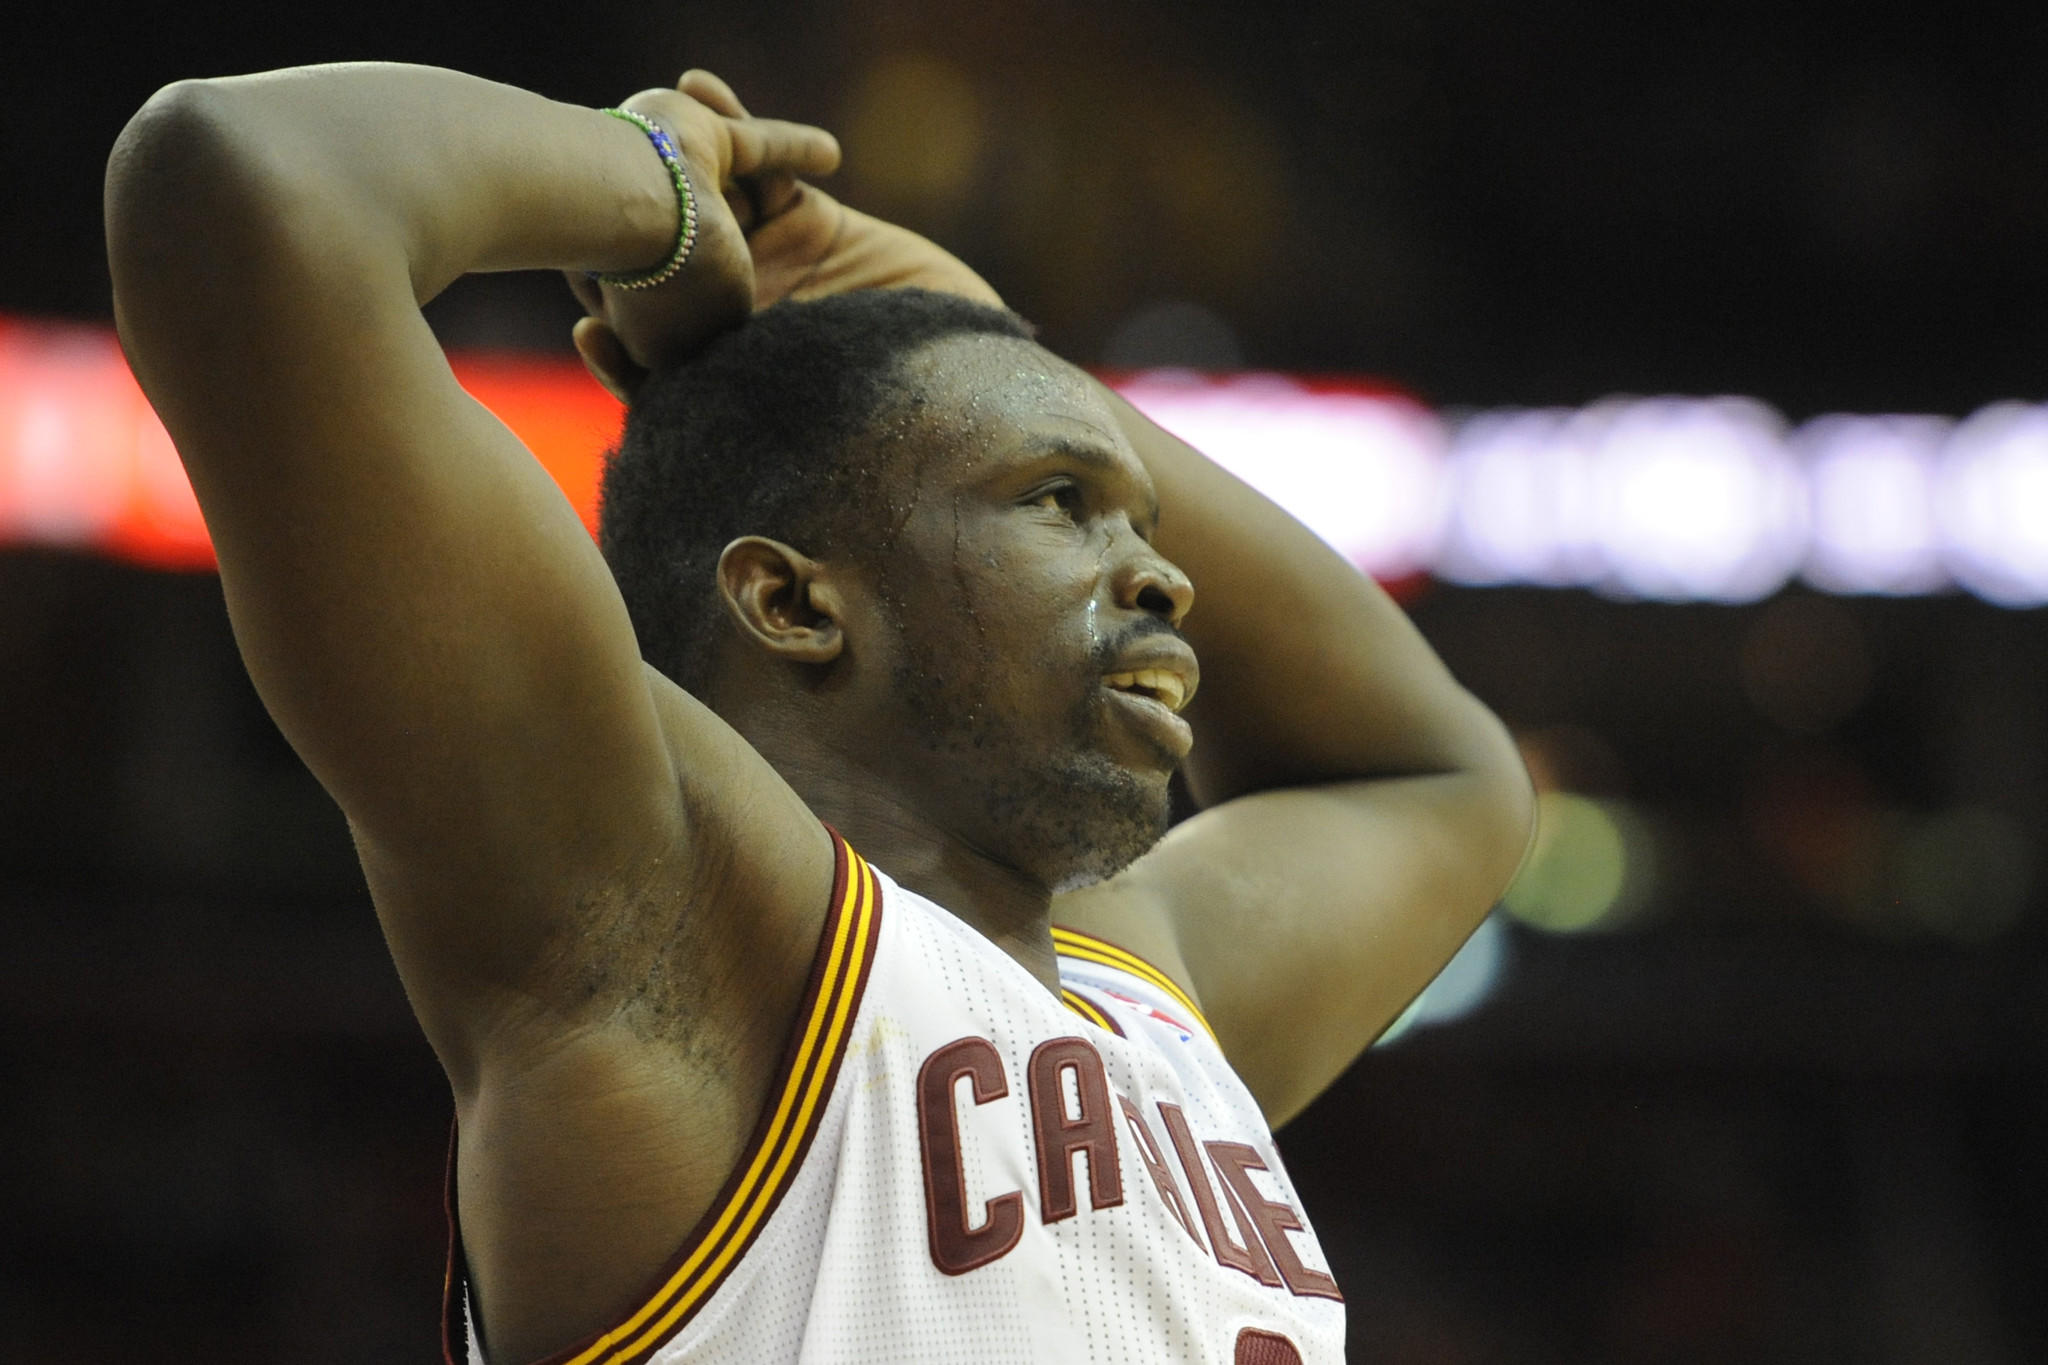 Cleveland Cavaliers small forward Luol Deng reacts in the fourth quarter against the Dallas Mavericks at Quicken Loans Arena.